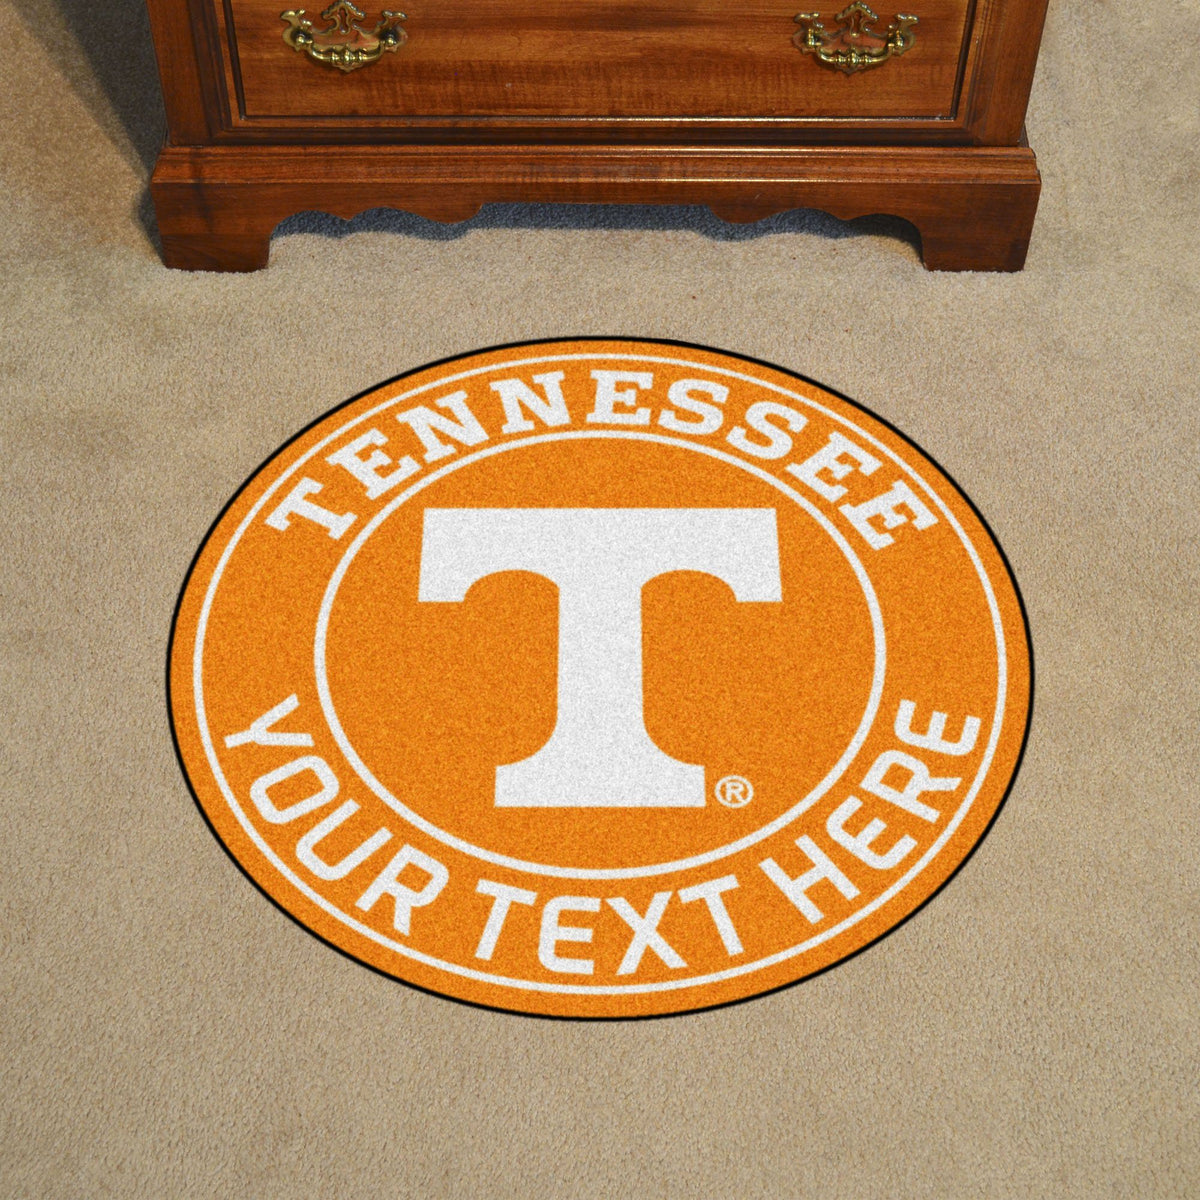 Collegiate Personalized Roundel Mat Personalized Roundel Mat Fan Mats University of Tennessee